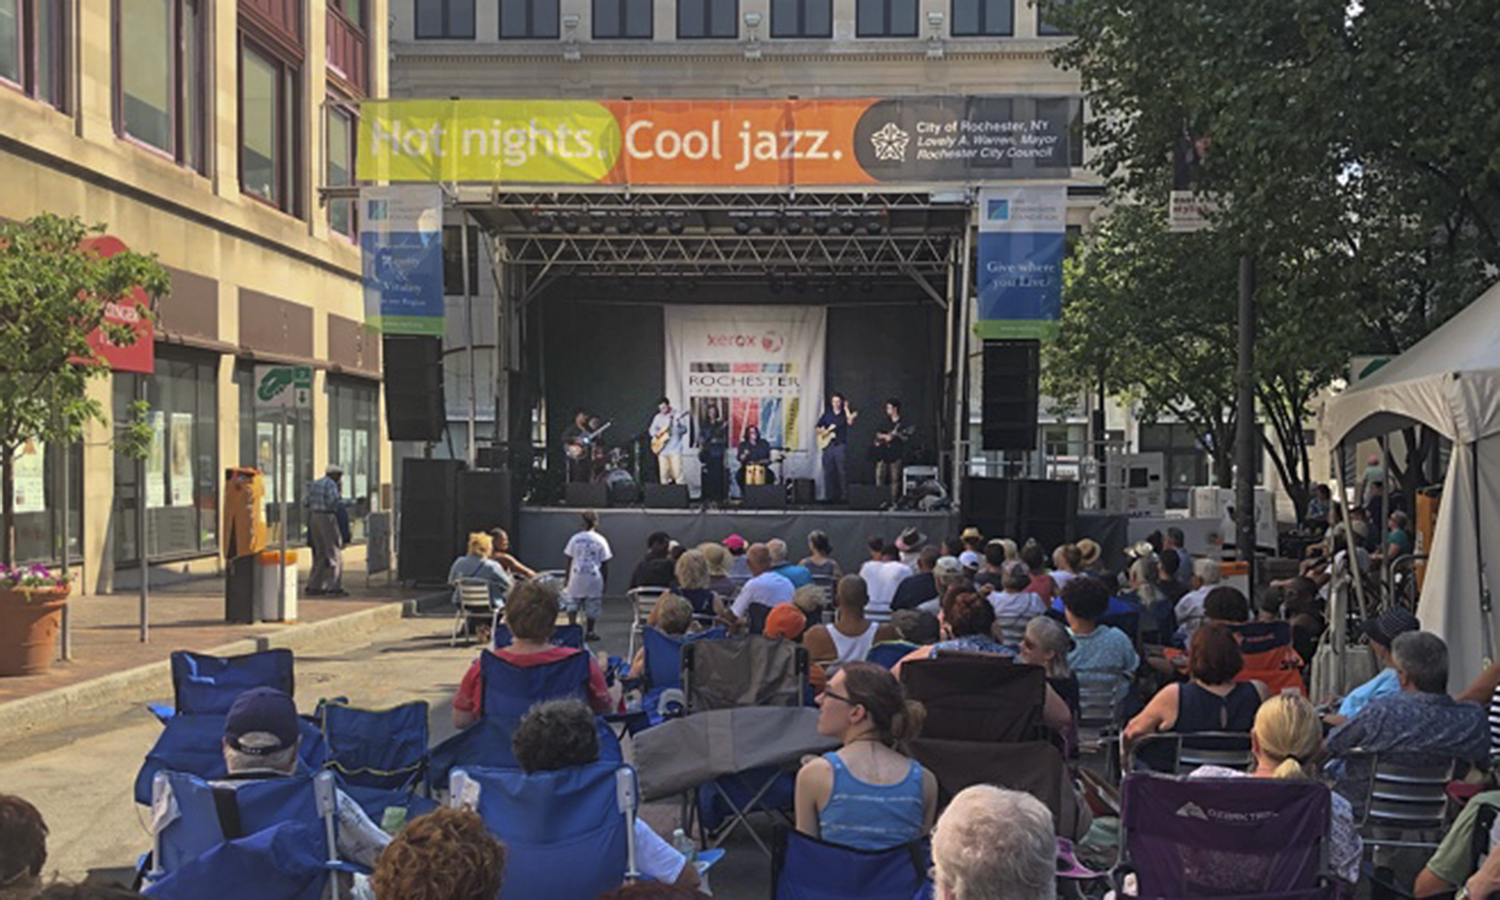 Members of the HWS Jazz Guitar Ensemble perform at the 2018 Xerox Rochester International Jazz Festival, led by Applied Instructor of Music Greg Wachala. The students include guitarists Michael Bruno â19 and Bradley Stewart â19, drummer Nick LaDuca '19 and percussionist Orson Sproule â21 and bass guitarist Jasper White â20.